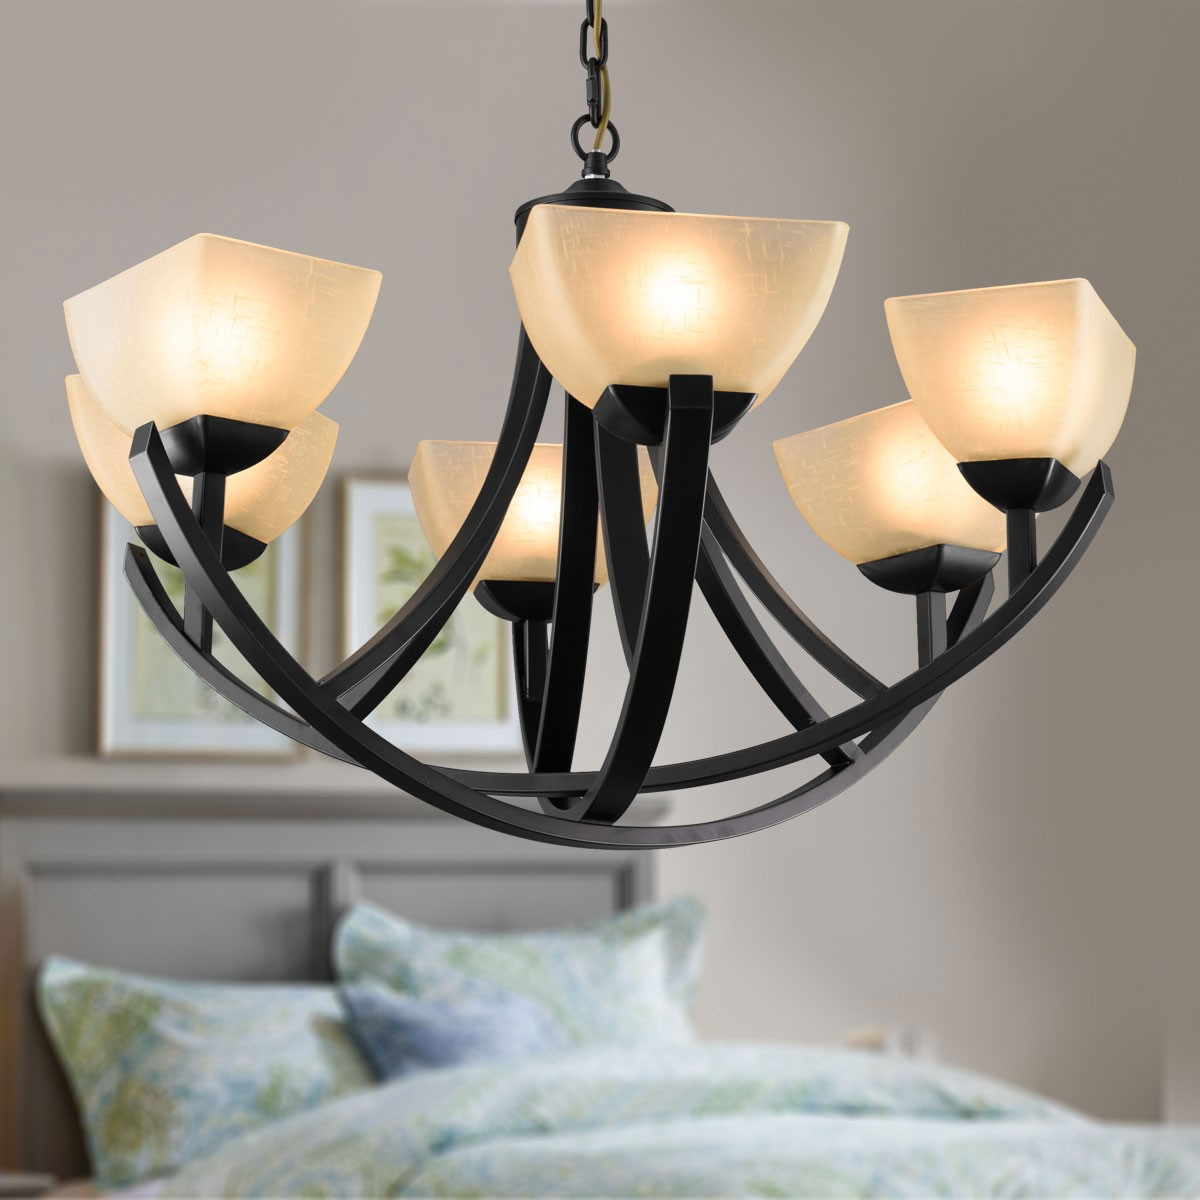 6-Light Black Wrought Iron Chandelier with Glass Shades (DK-8016-6)